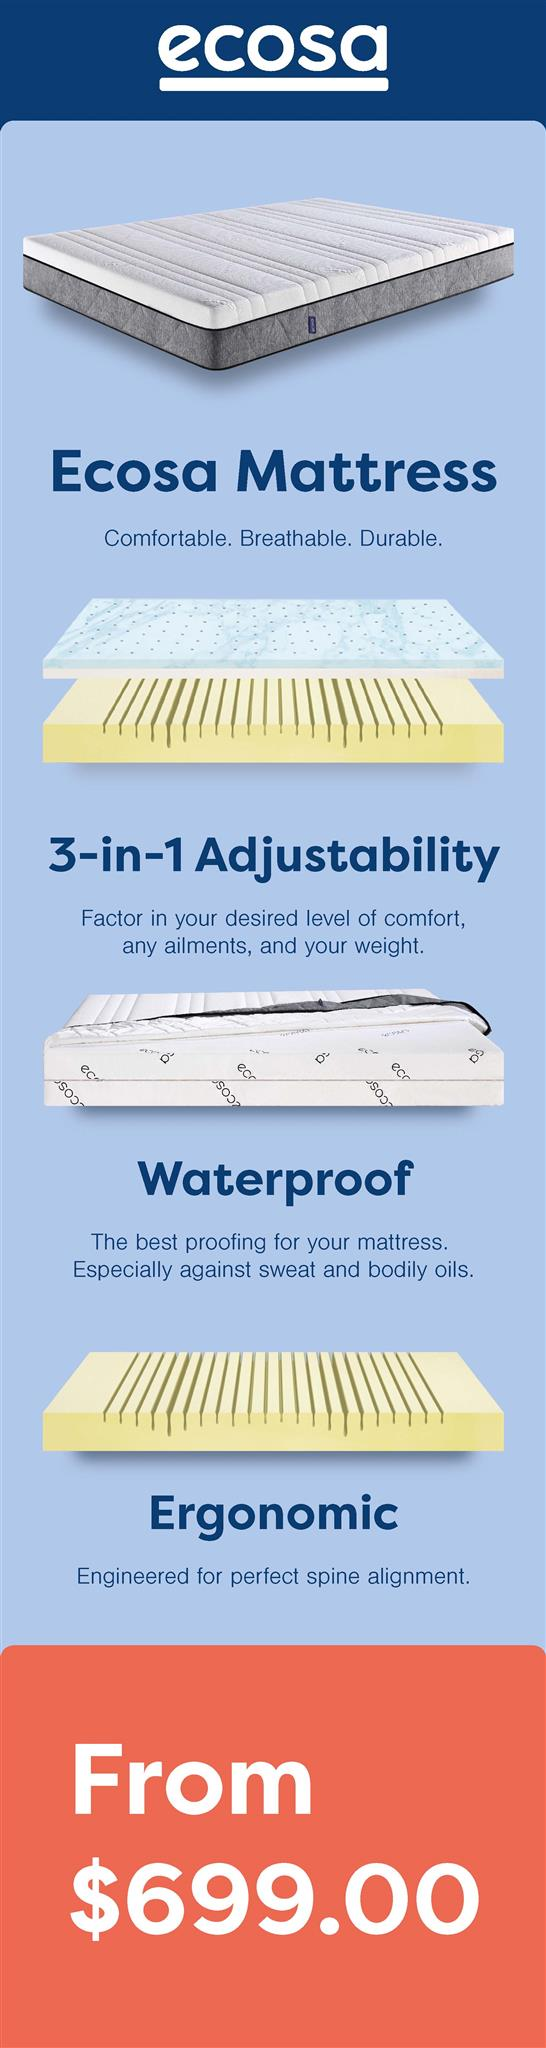 where are ecosa mattresses made